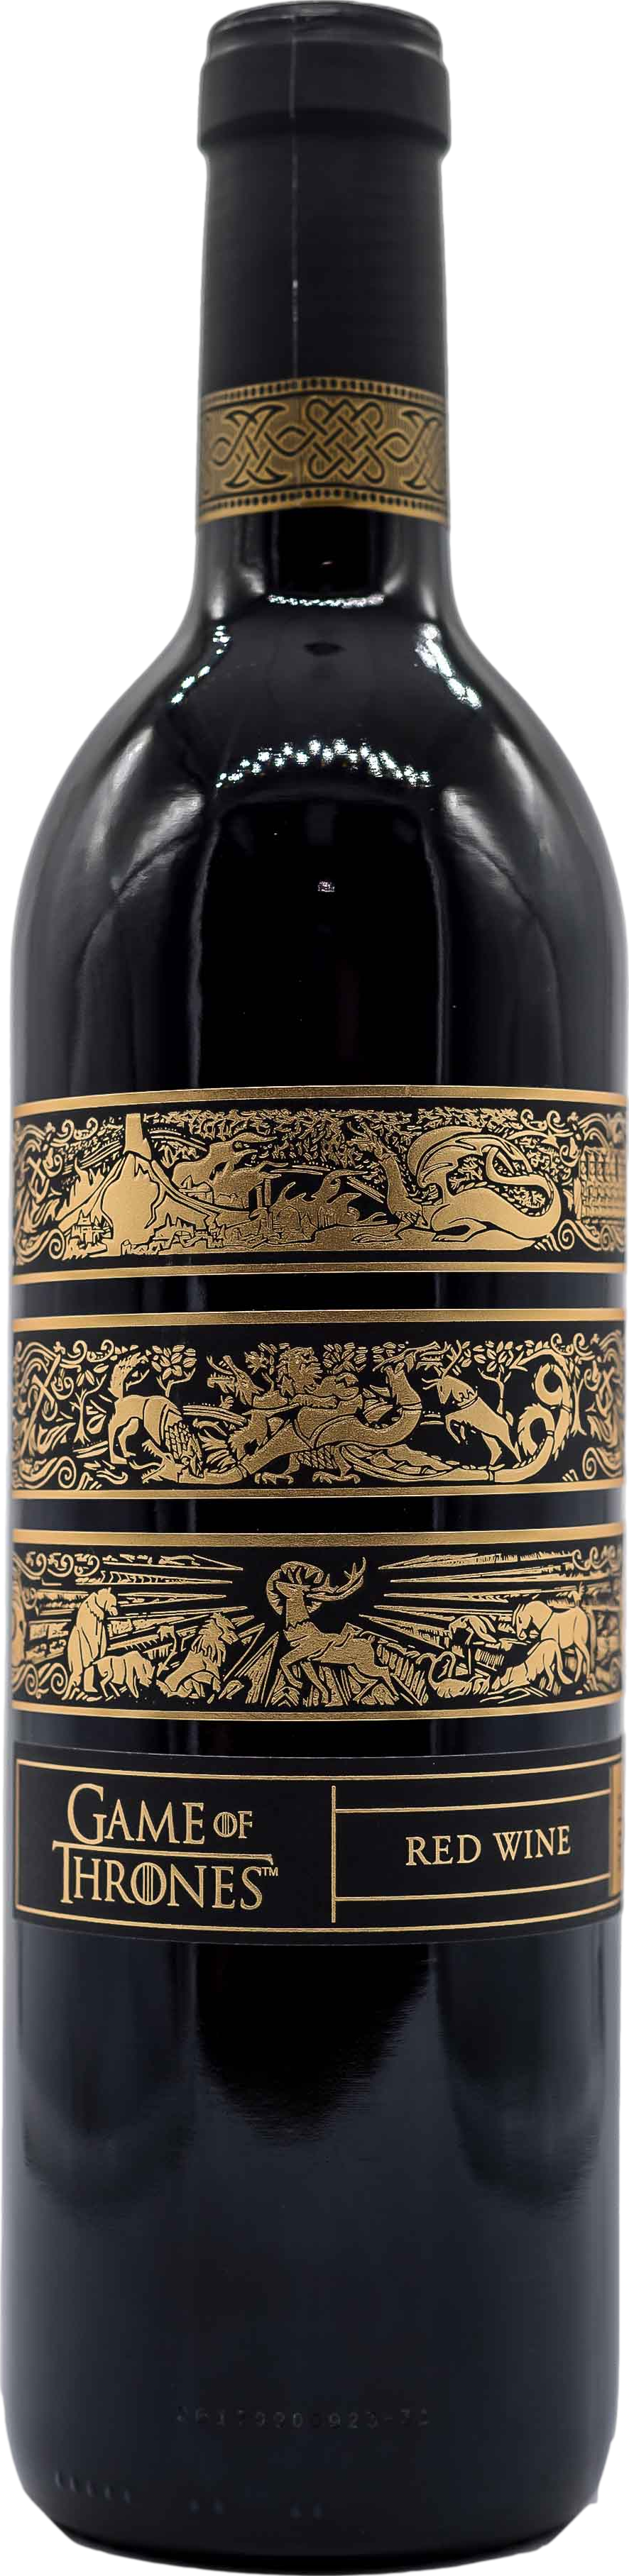 Game Of Thrones Red Wine Paso Robles 2016